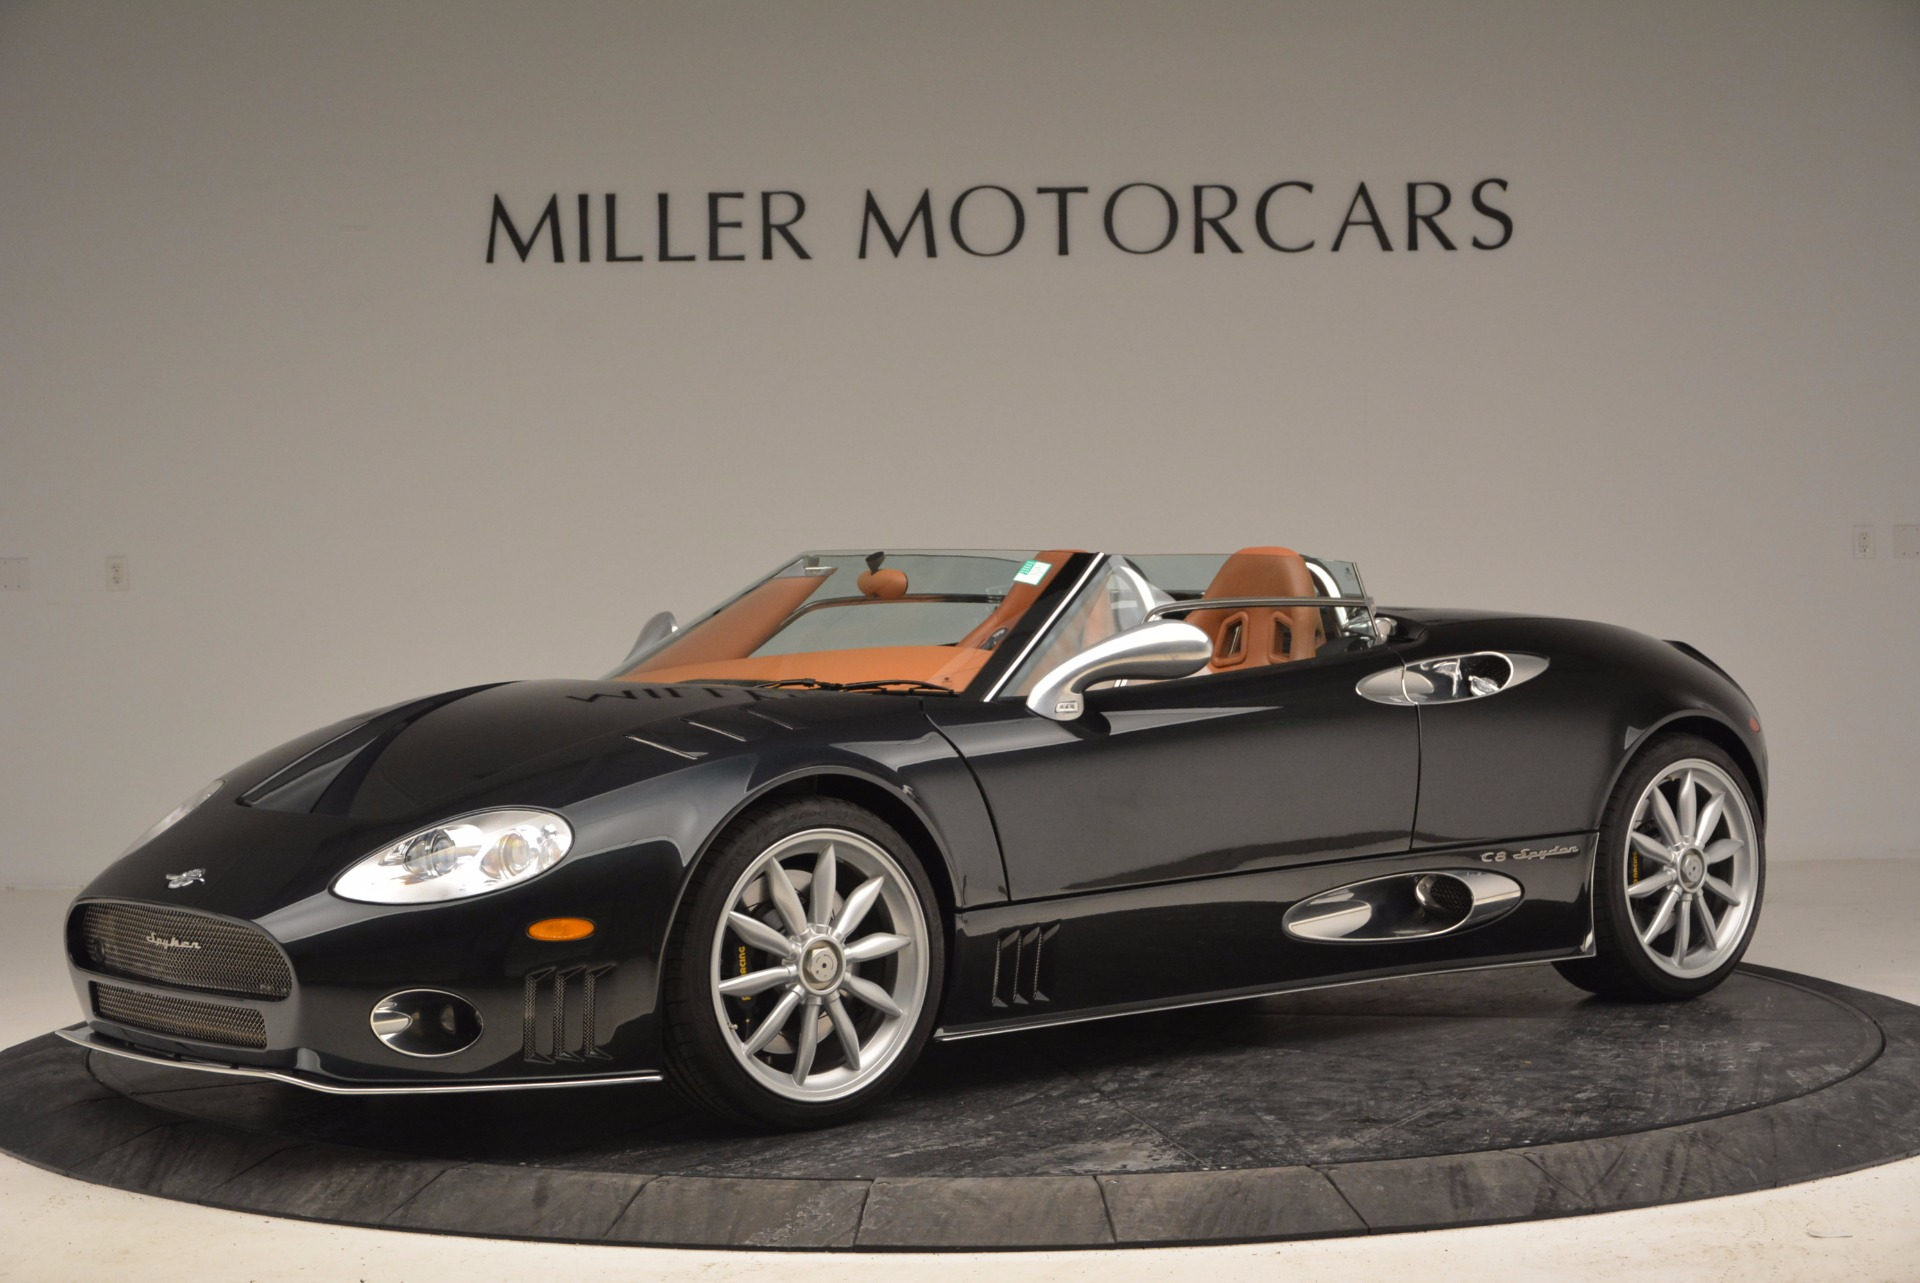 Used 2006 Spyker C8 Spyder  For Sale In Greenwich, CT. Alfa Romeo of Greenwich, 7157 1007_p4